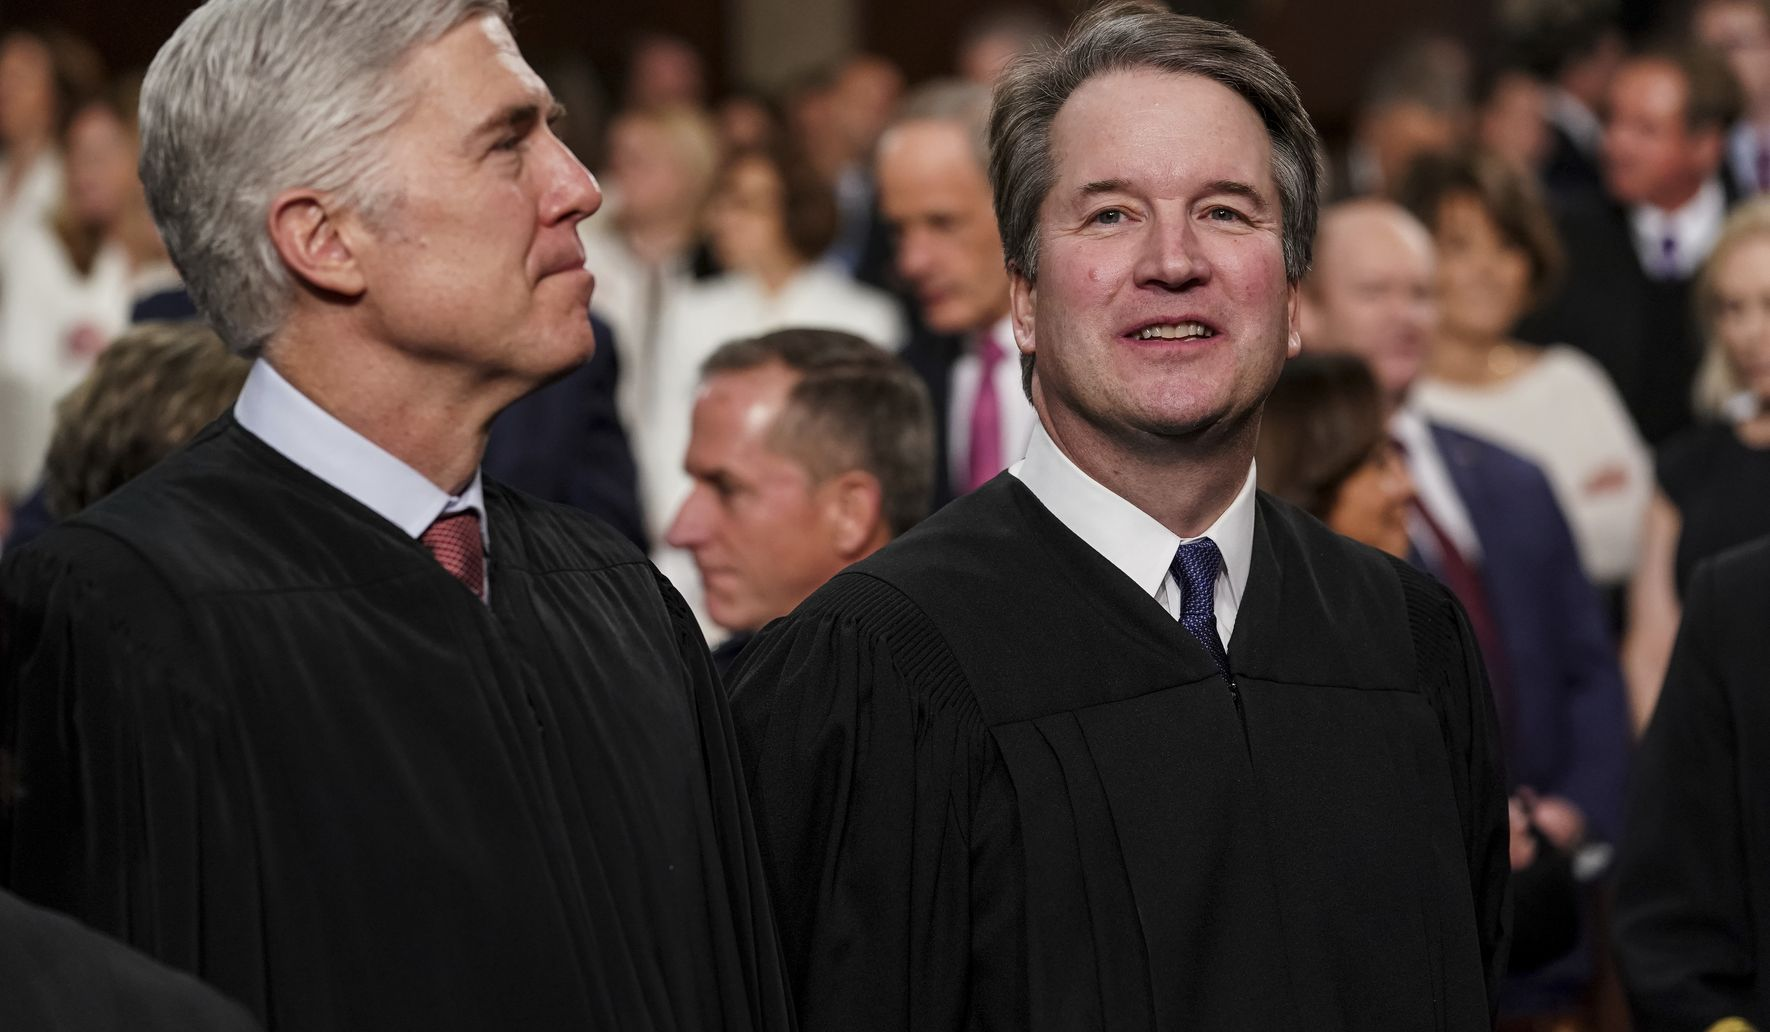 The latest attacks on Justice Kavanaugh threaten more than his reputat